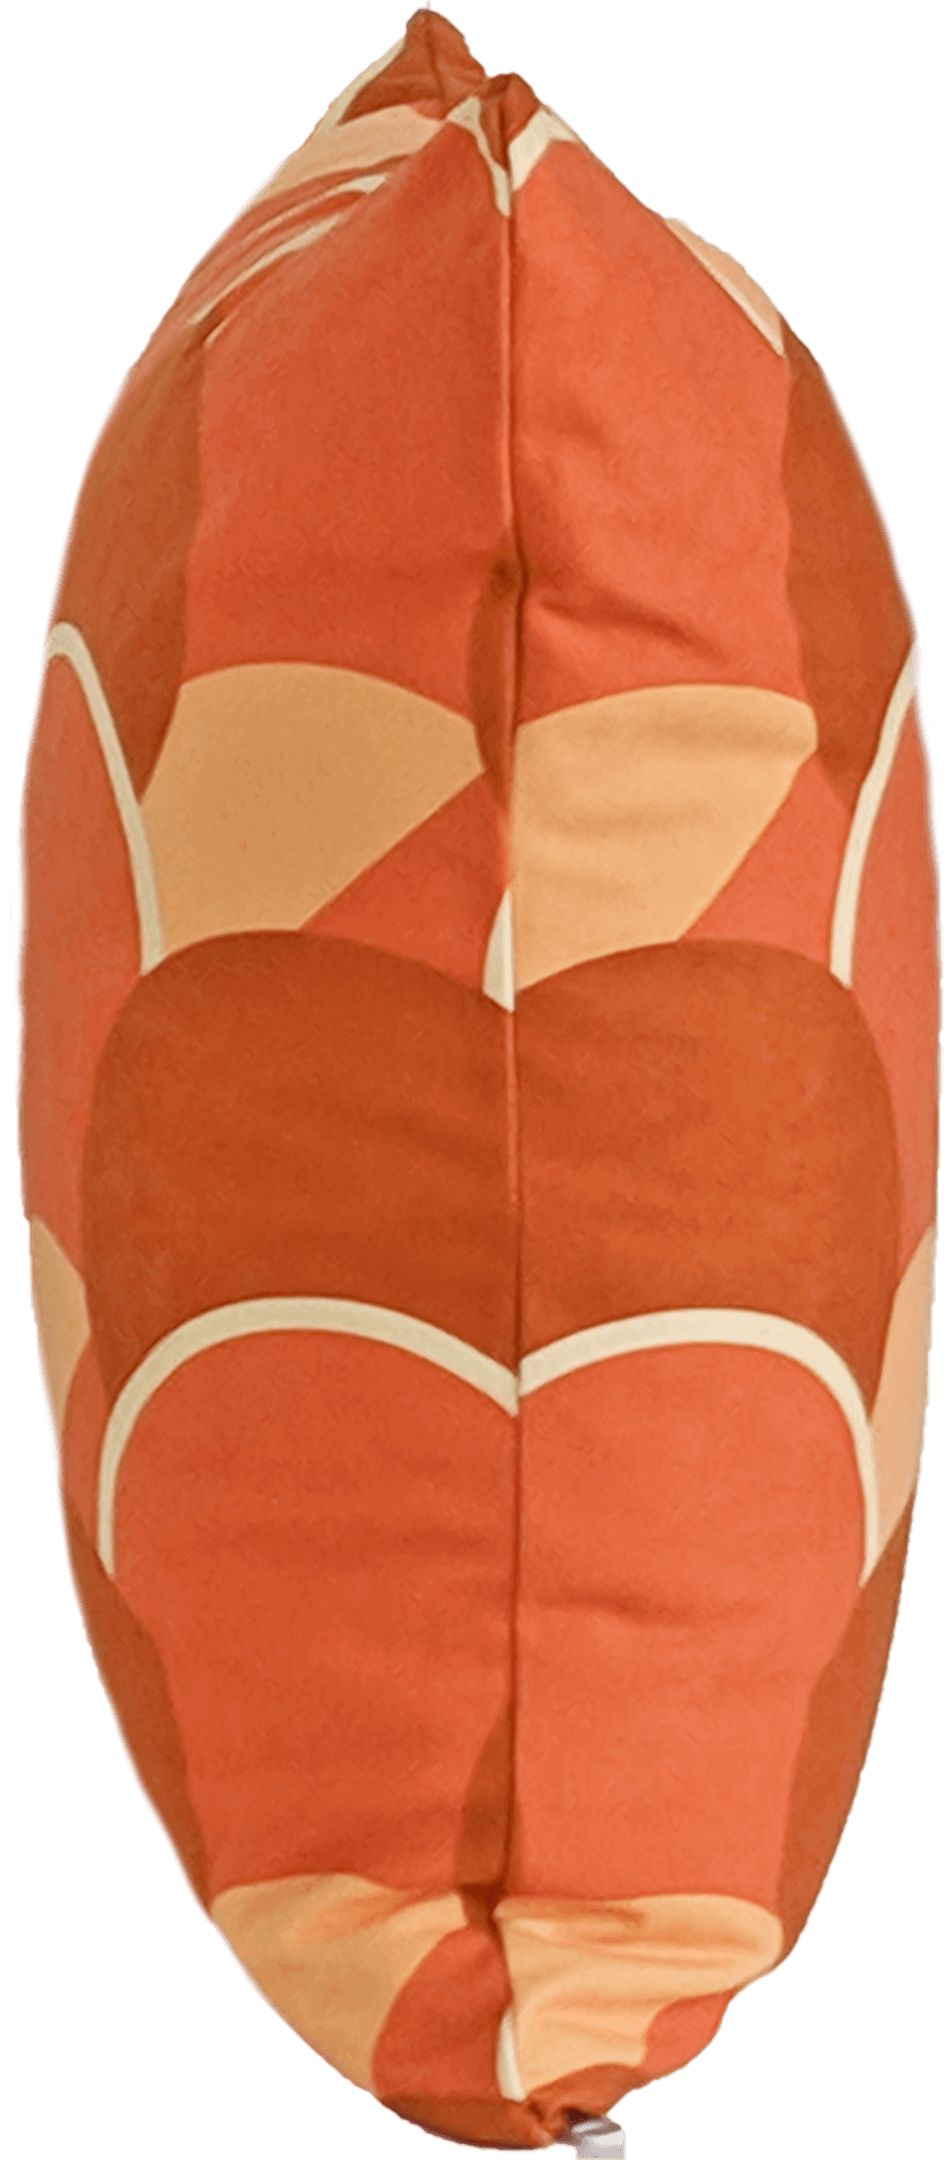 Orange faux suede throw pillow showing same pattern on both sides